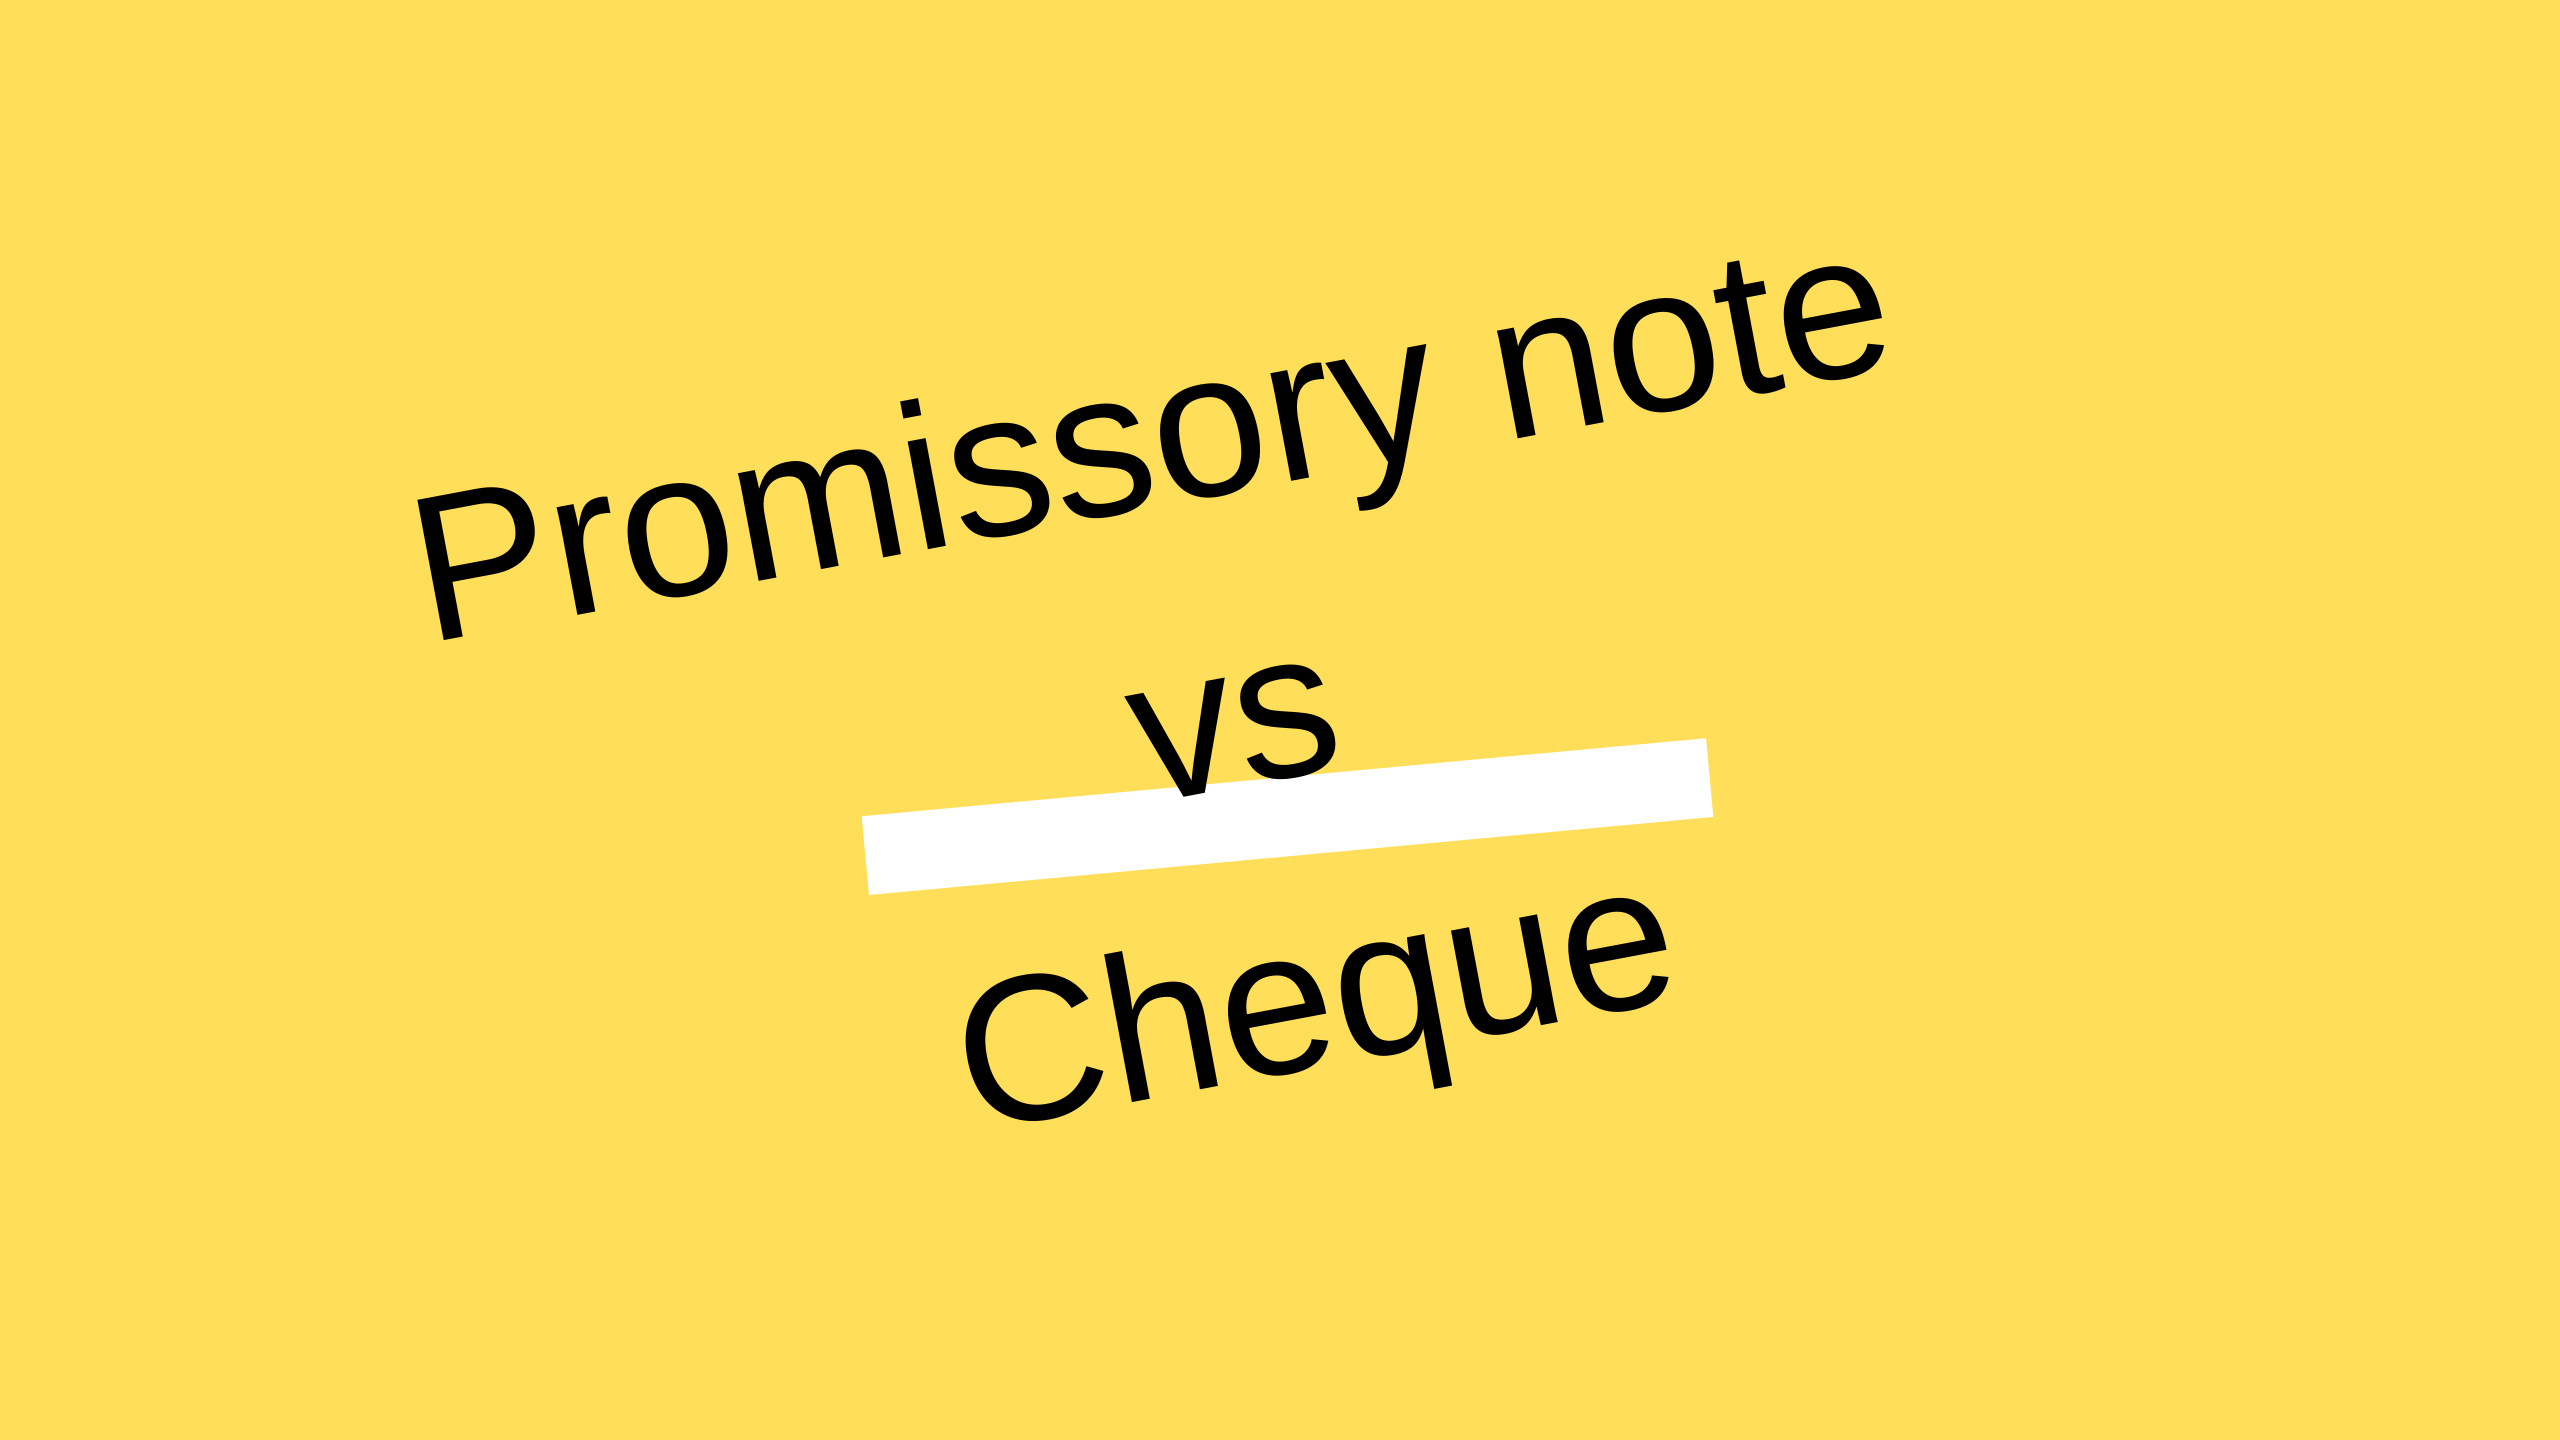 Difference between promissory note and Cheque